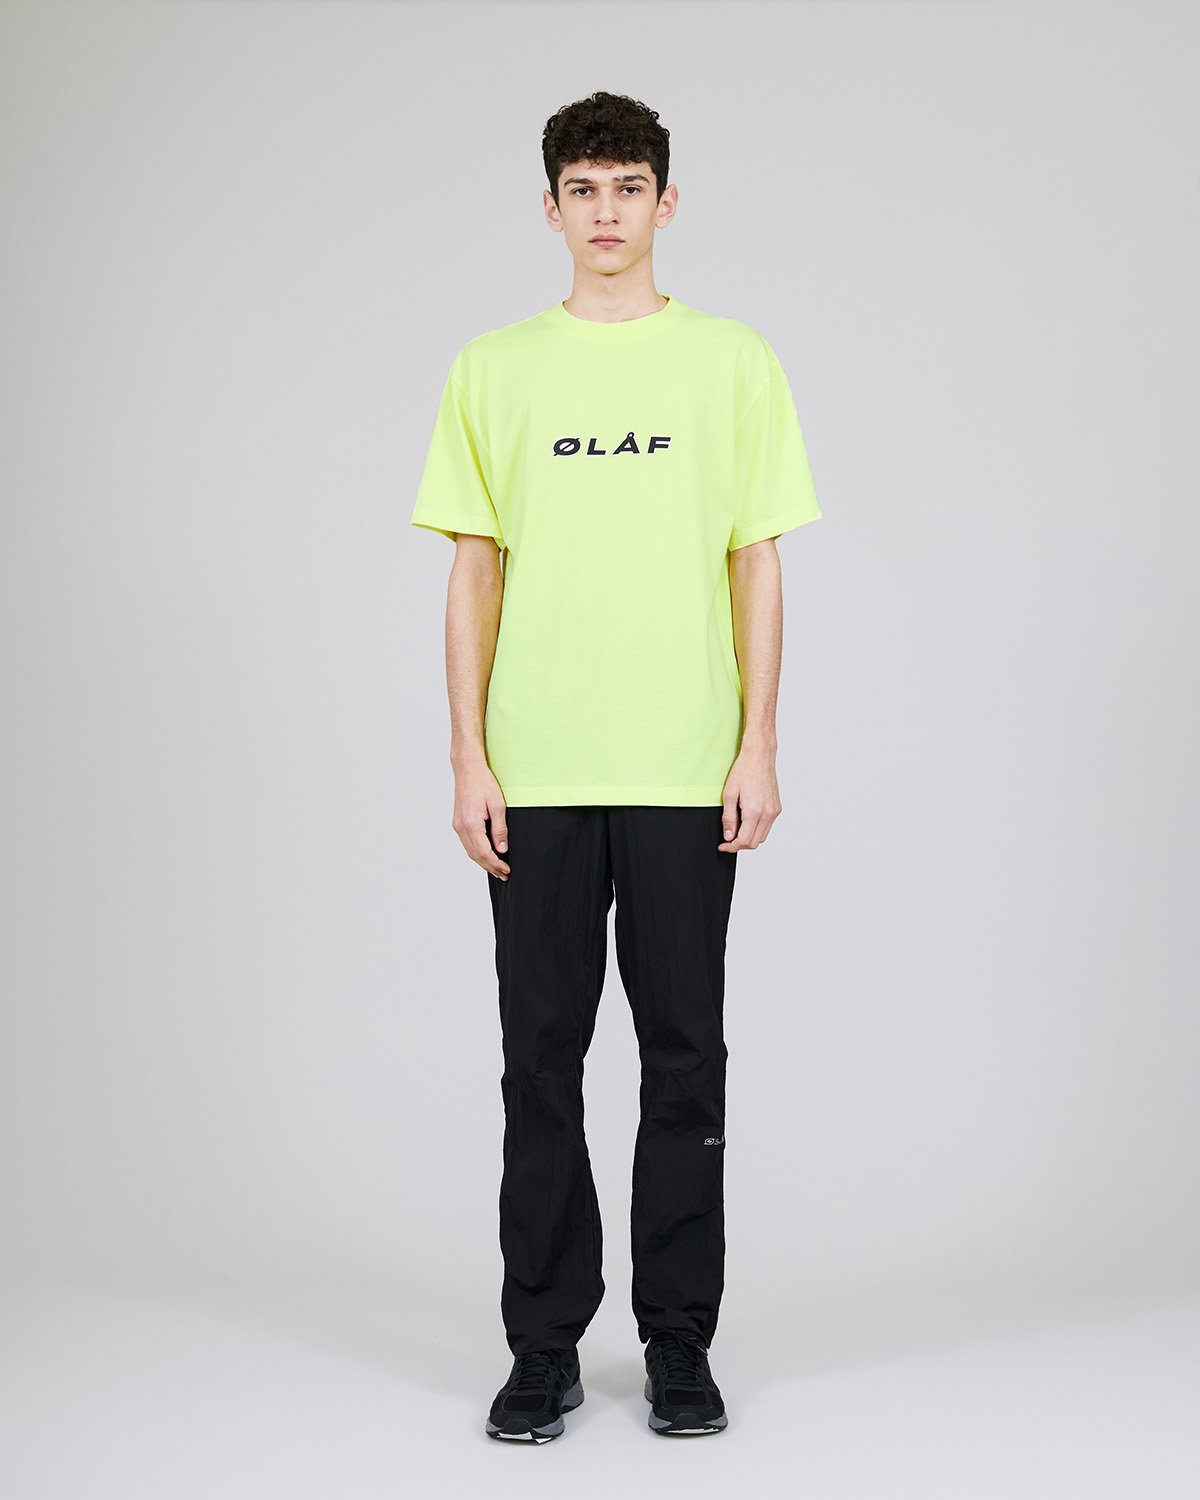 ØLÅF Italic T Neon, Portuguese fabric, 100% cotton (220 grams/sqm), Post wash, Fine ribbed collar, Made in Portugal